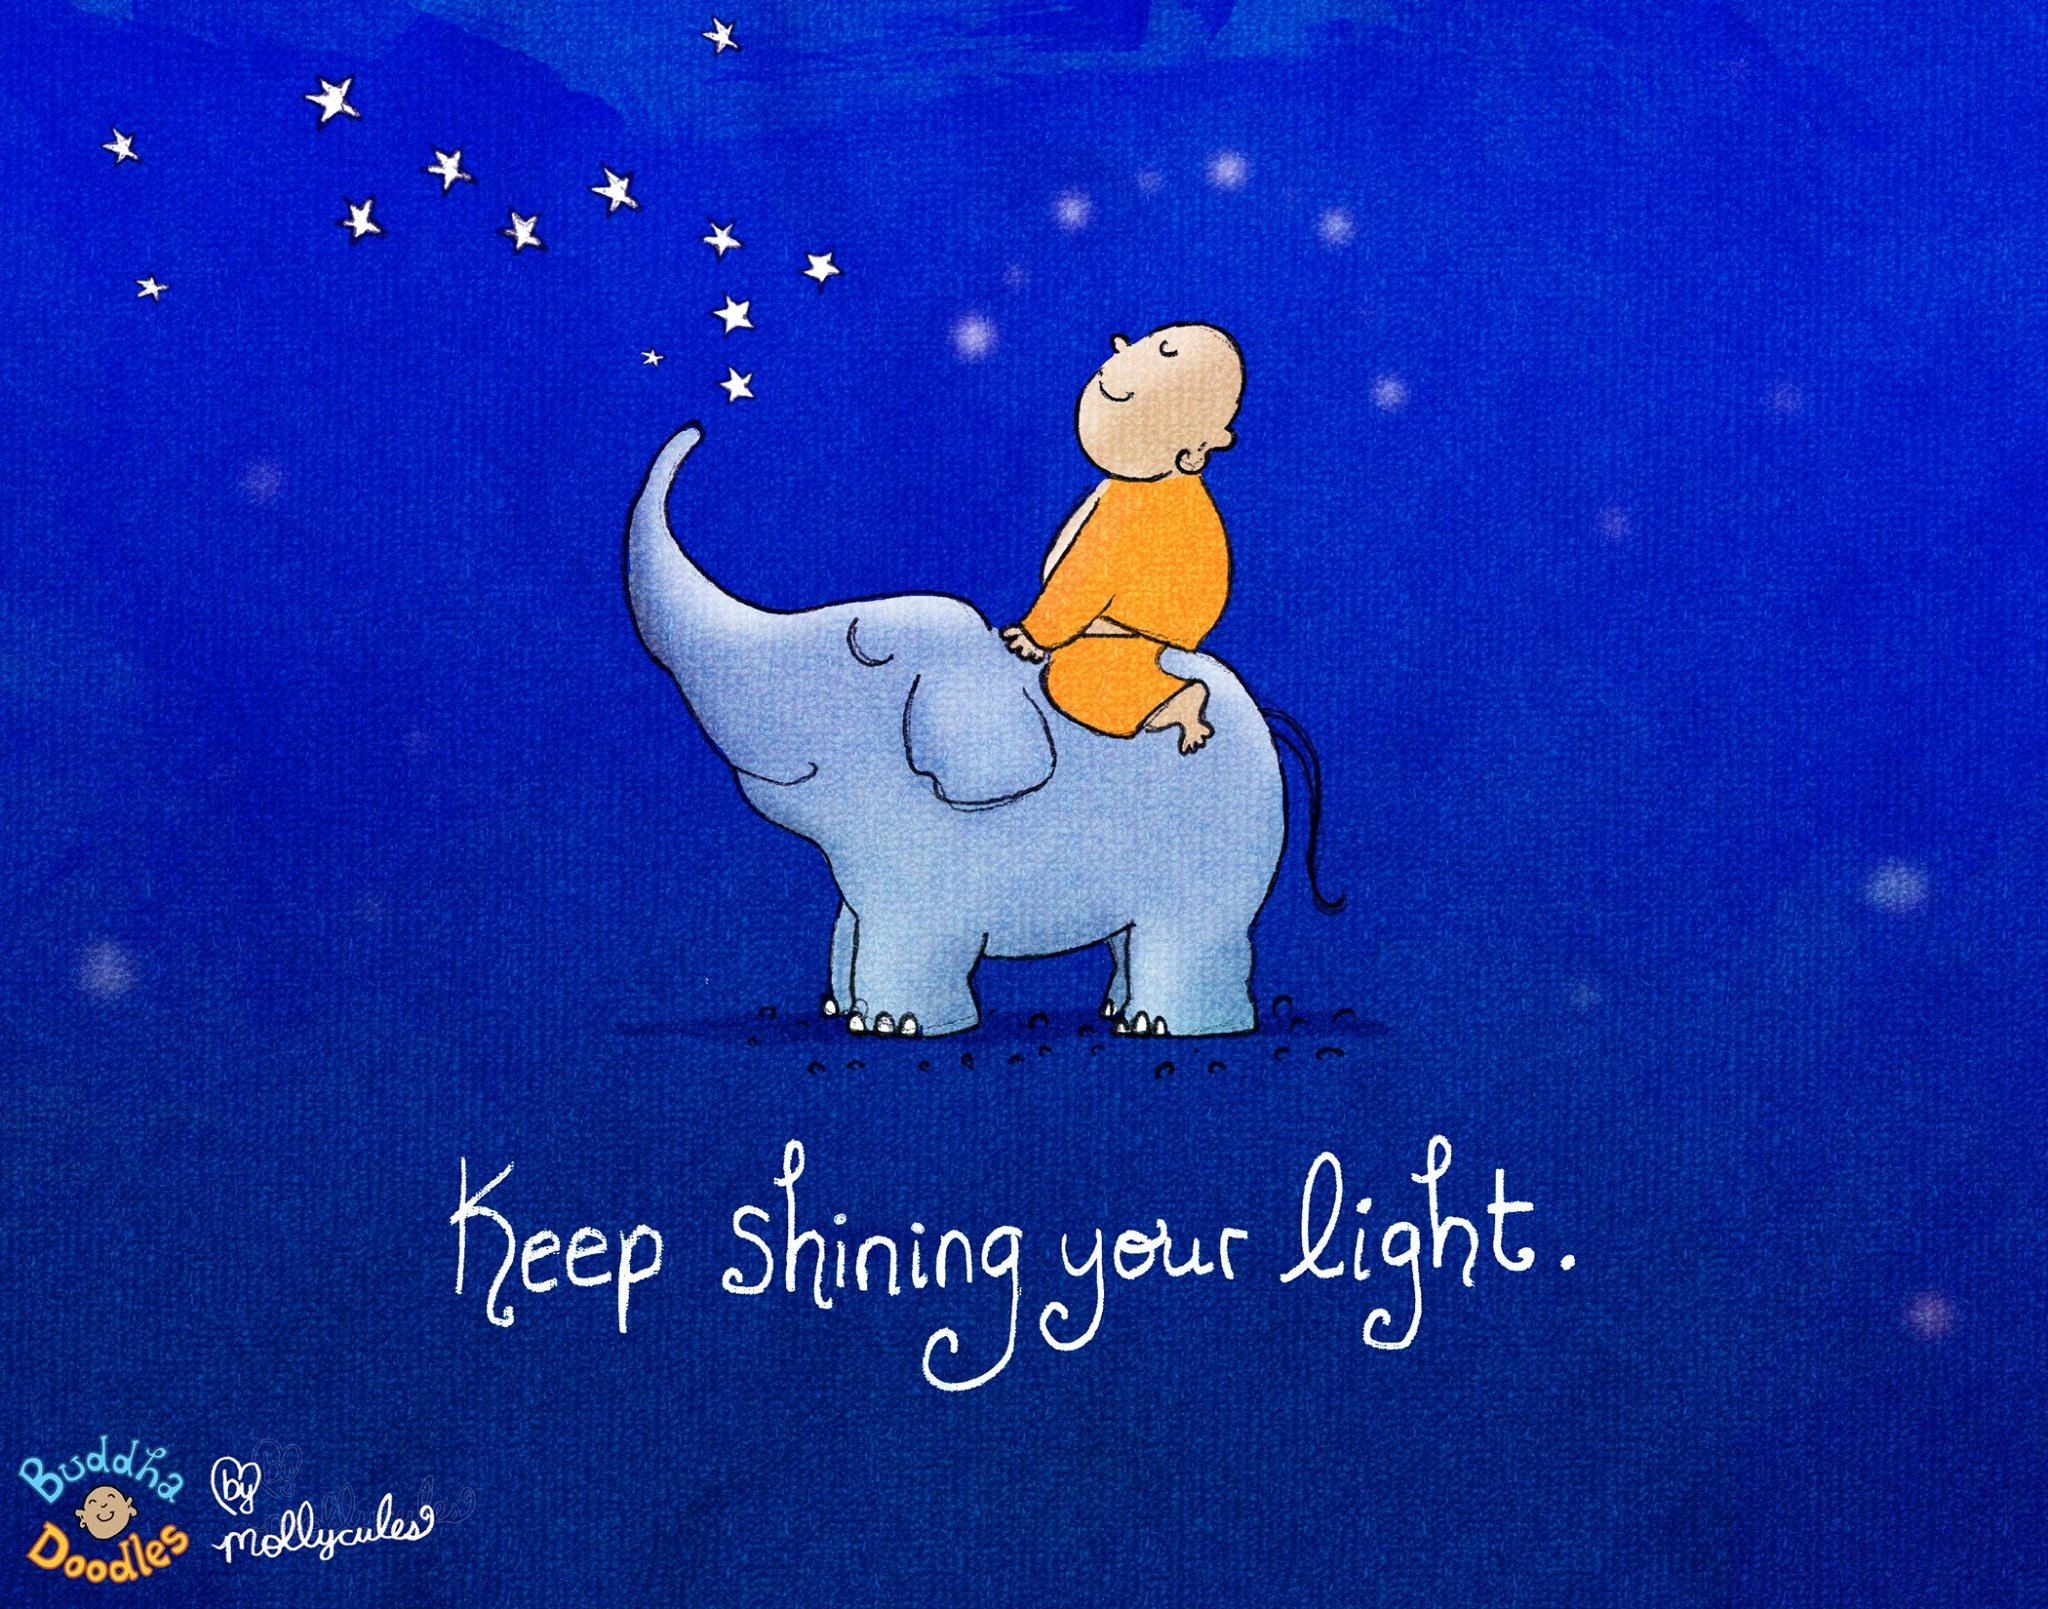 Quotes About Shining Light: Keep Shining Your Light